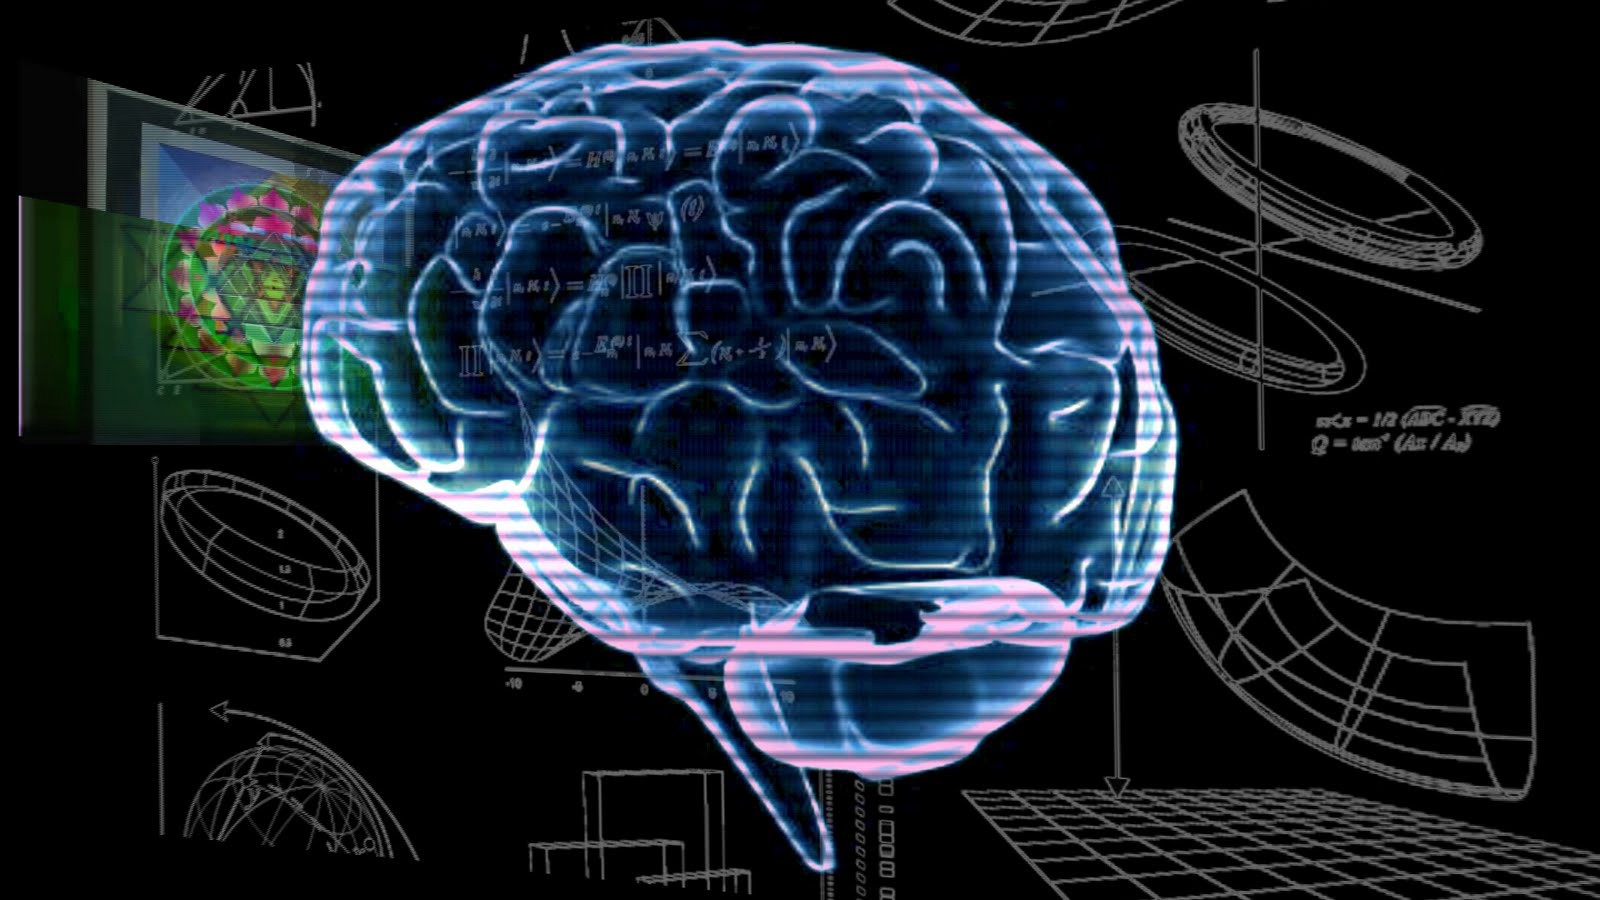 Immortality Technology A Tour To Mind Uploading Arvr Journey Easy Brain Diagram Our Is Complex Combination And Emotion The Most Matter This Not So Detect Human Through Computer